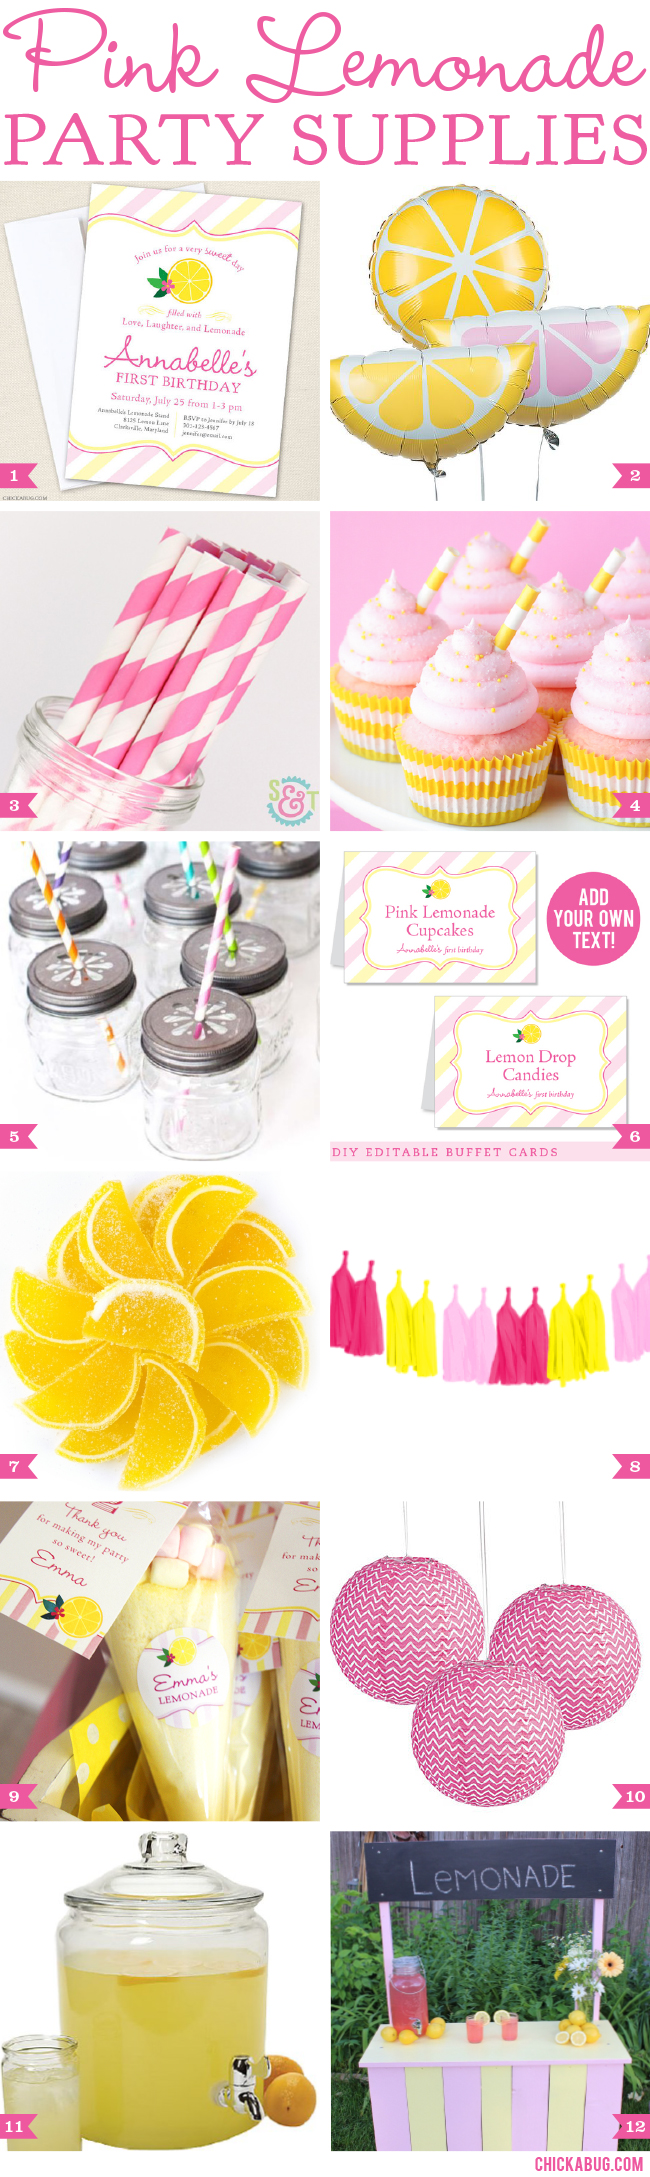 Pink Lemonade Party Supplies. The sweetest goodies you'll need for your pink lemonade party!